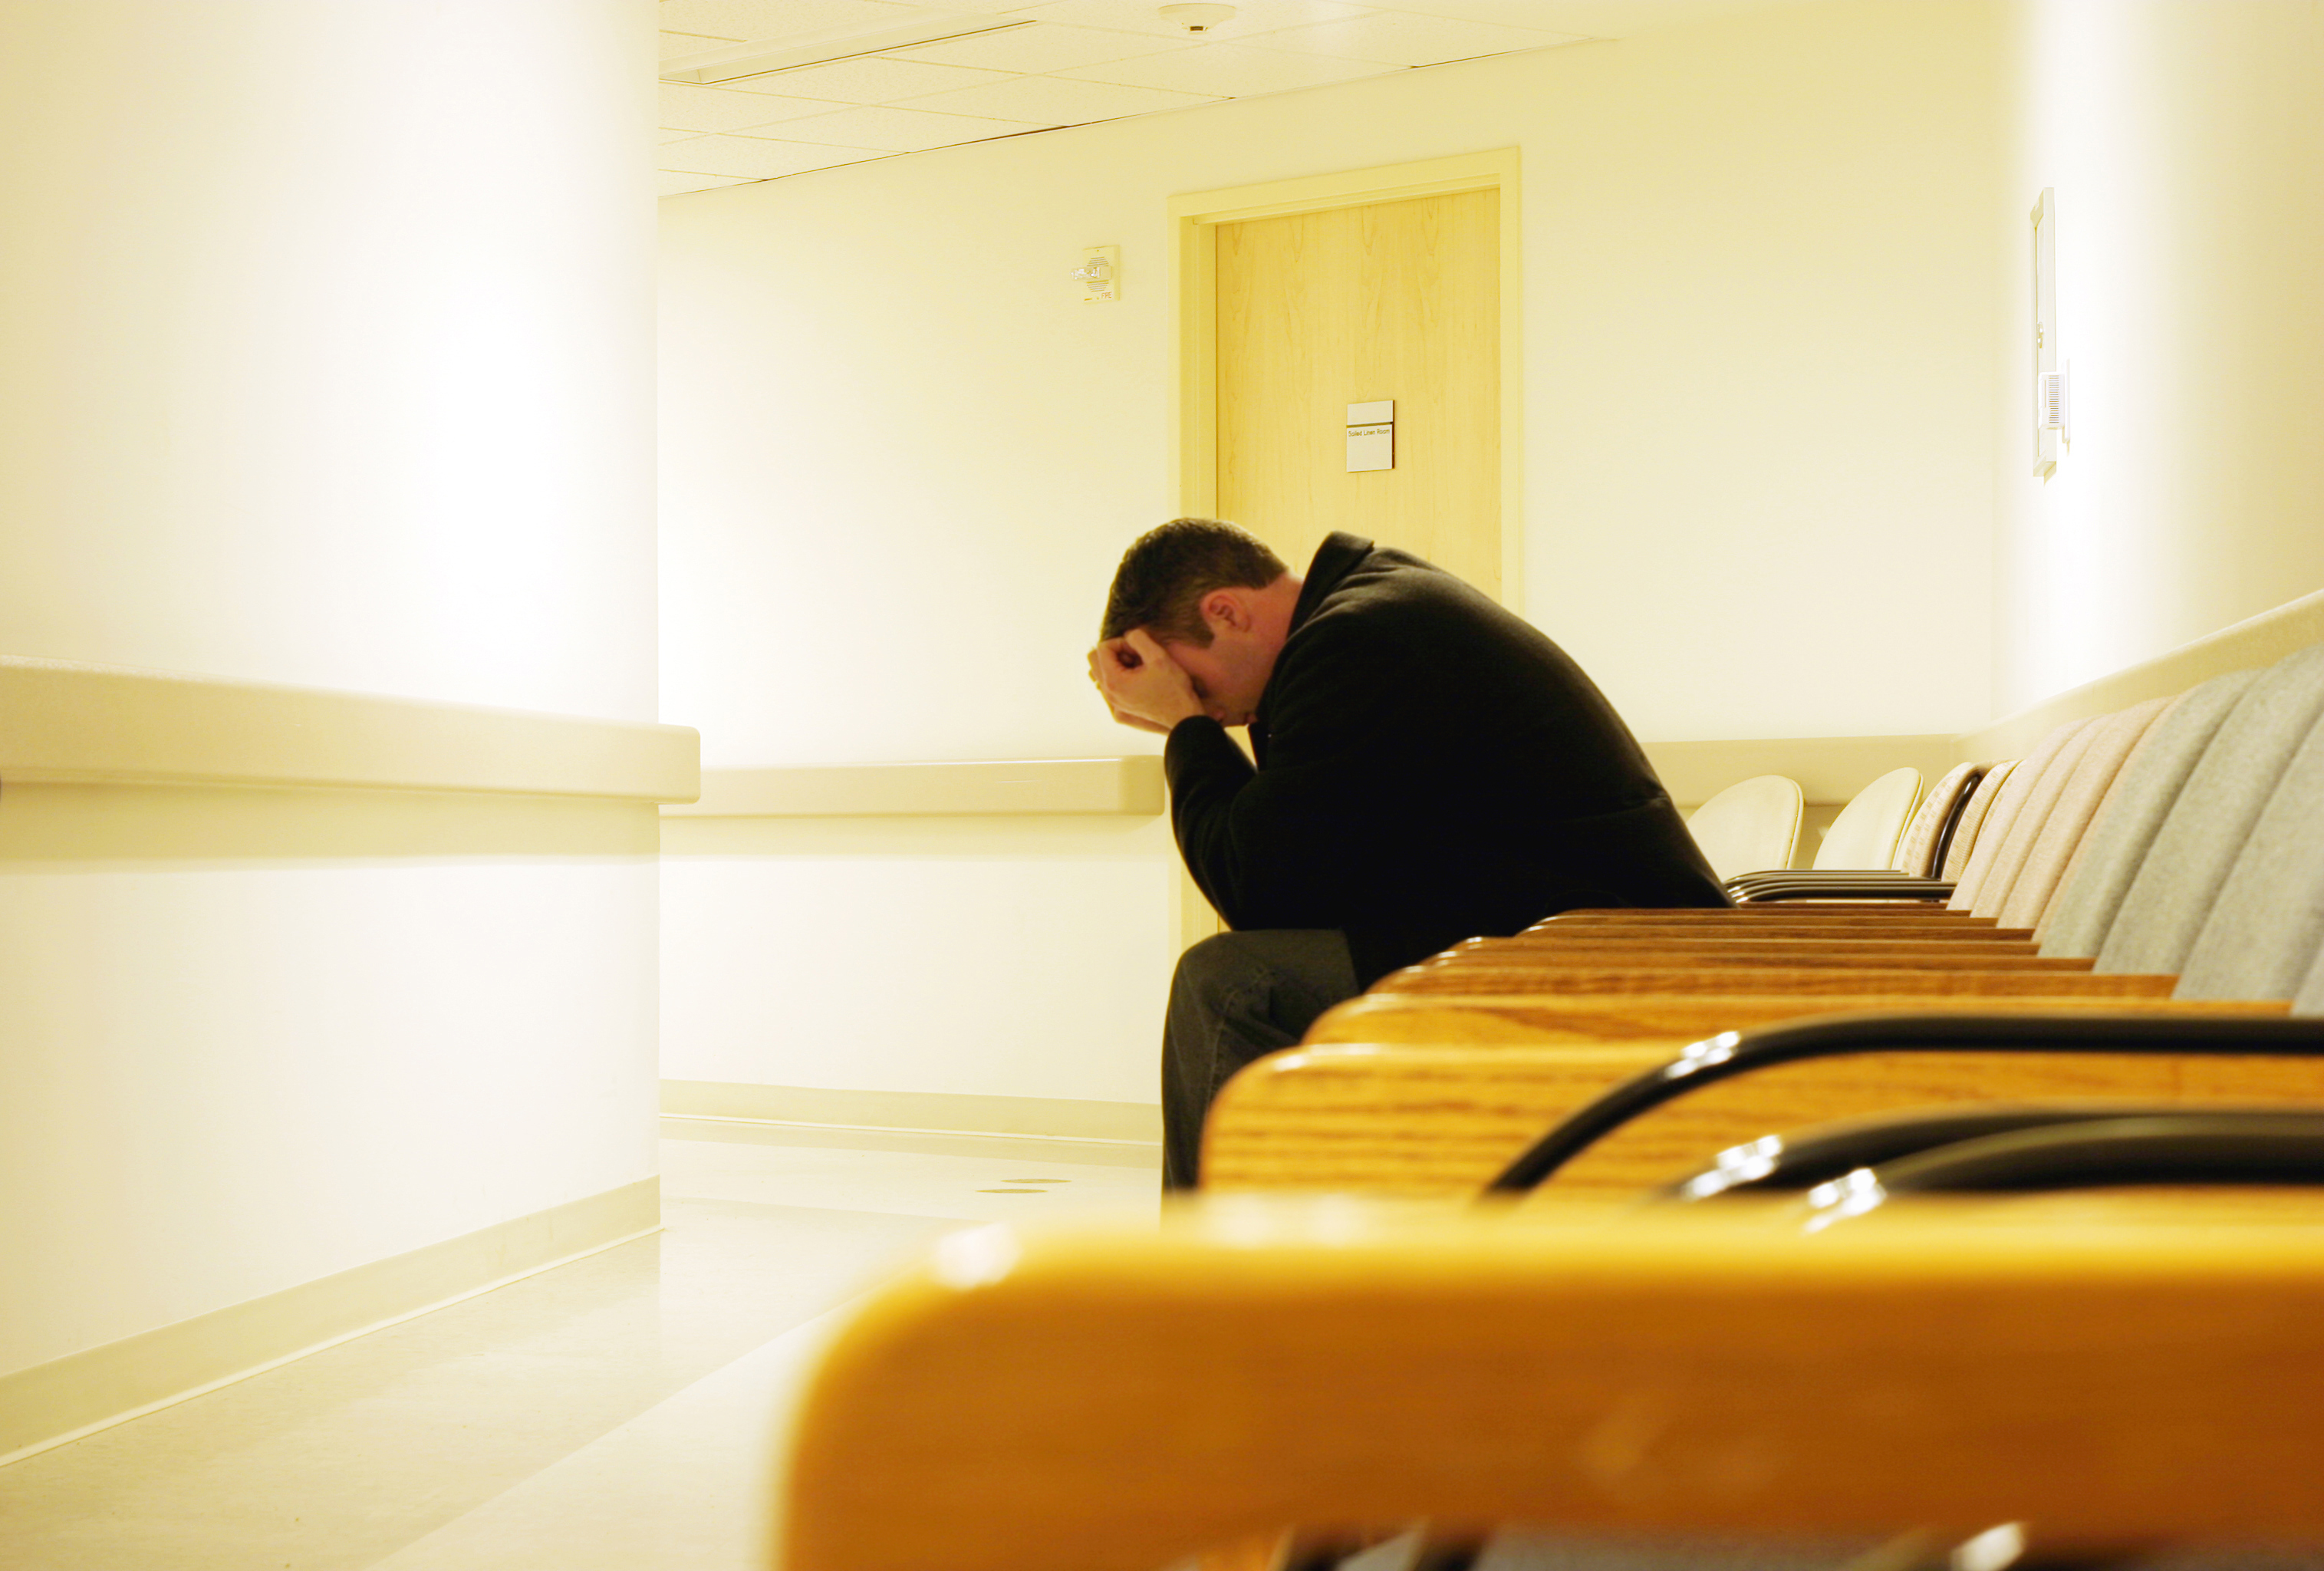 Man sits in doctor's office waiting room with his heads in his hands.